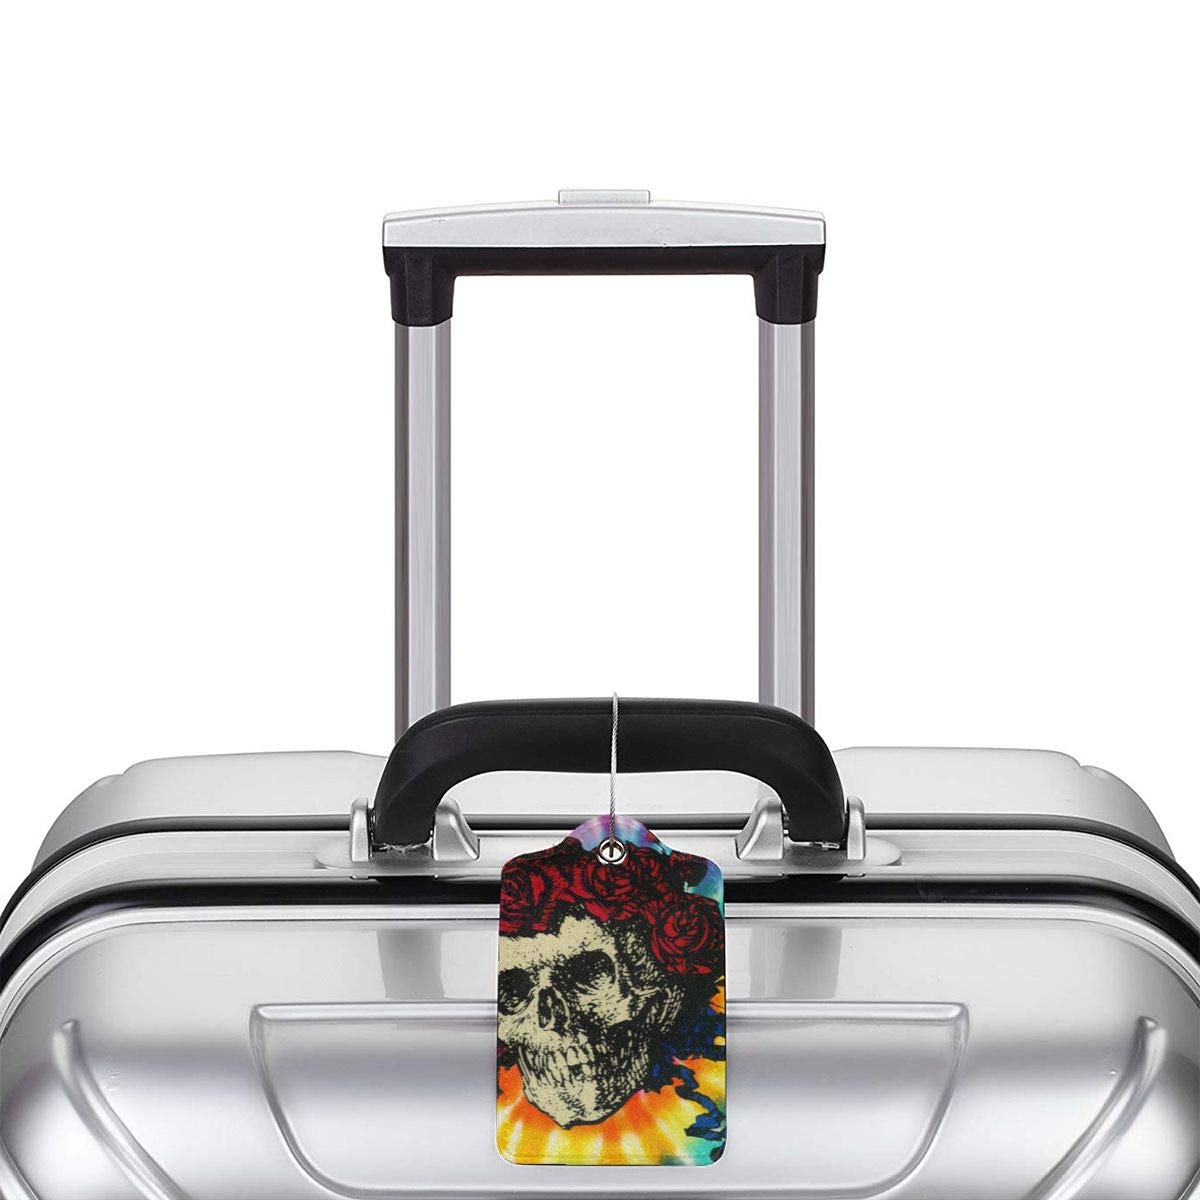 Travel Luggage Tags PU Leather Bag Tags Suitcase Baggage Label Handbag Tag With Full Back Privacy Cover Steel Loops Flower Sugar Skull Rose Tie Dyed set of 4